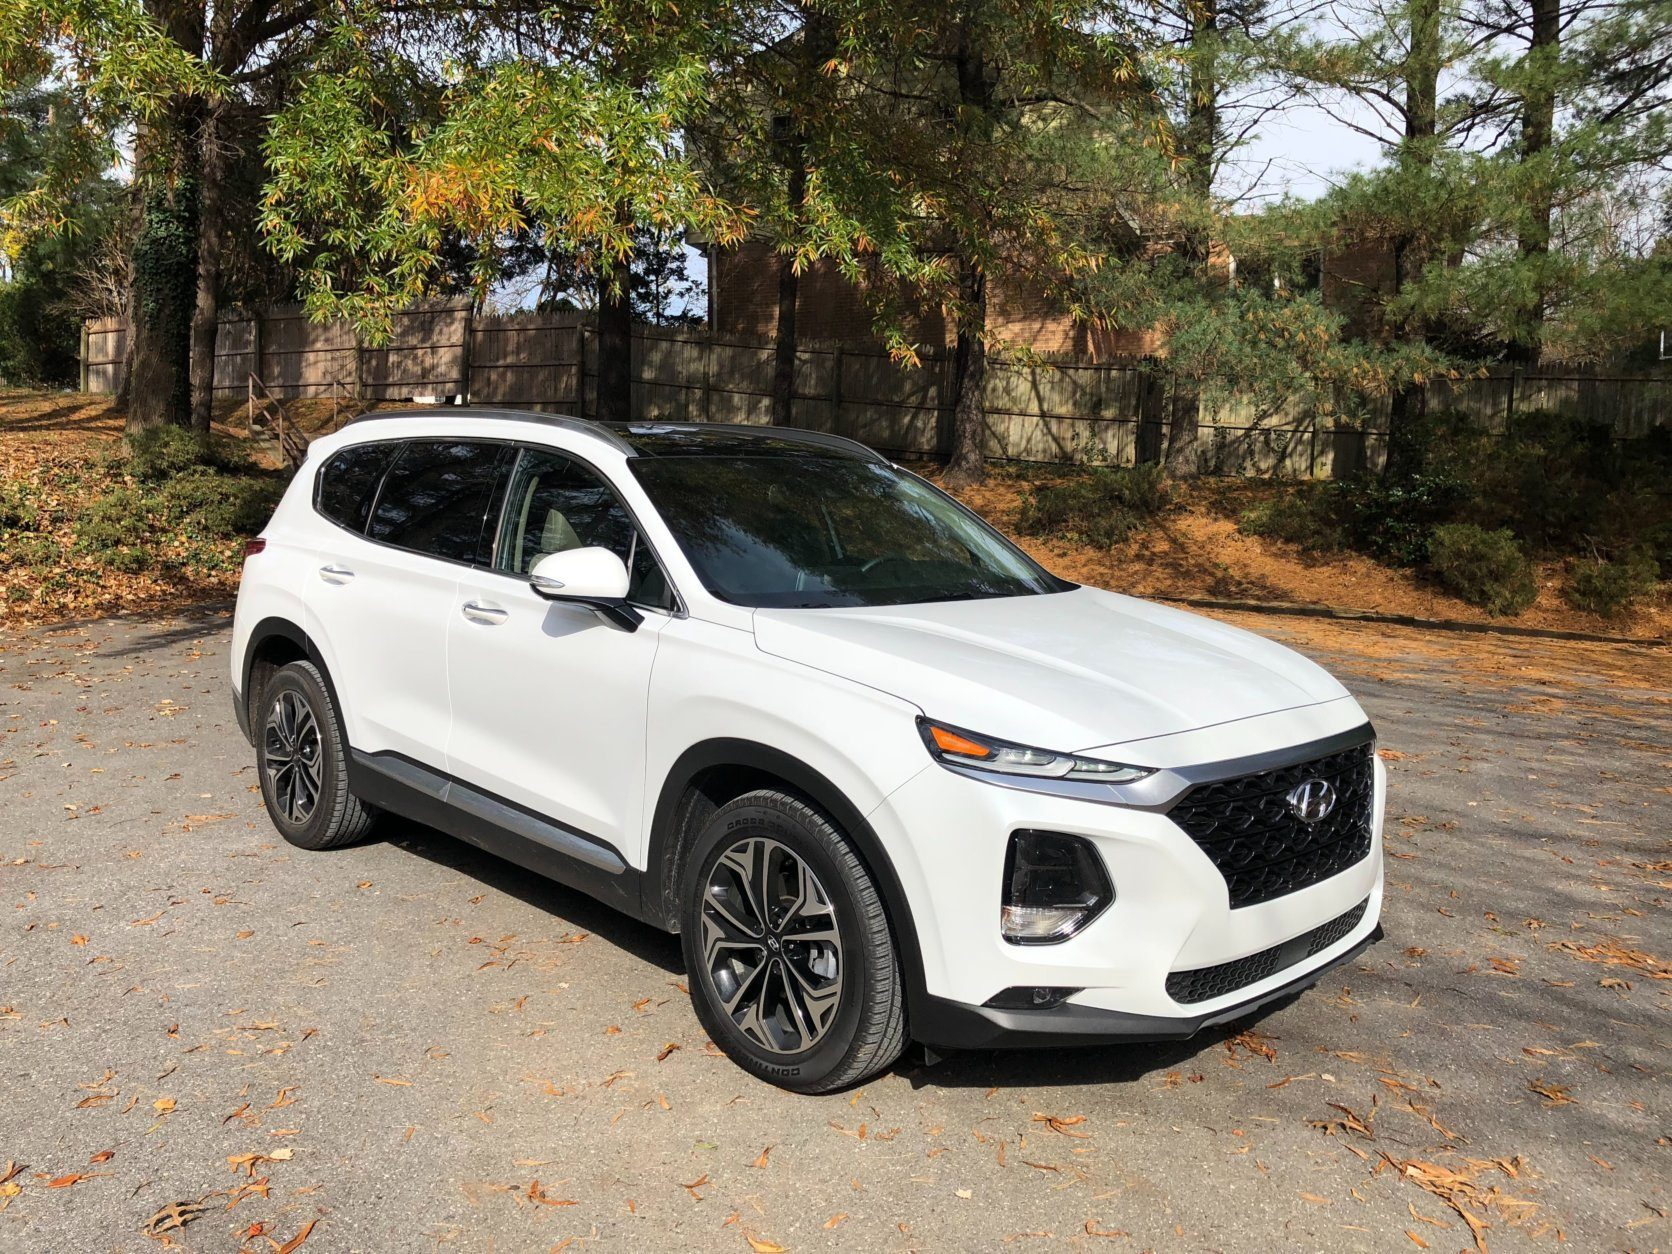 <p>The outside of the 2019 Hyundai Santa Fe Ultimate has a more expressive look. The last generation of Hyundai vehicles seem to go very conservative with styling, but the new versions are going back to more eye-catching designs.</p>